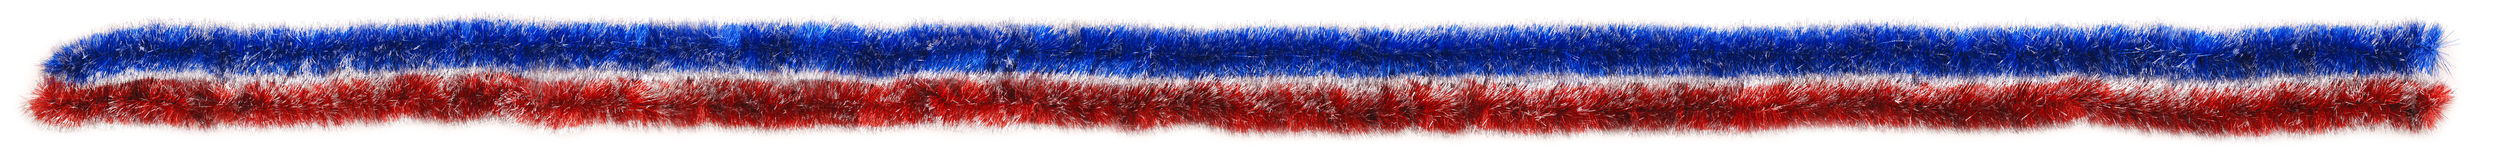 Blue and red tinsel sample real size Stock Photography